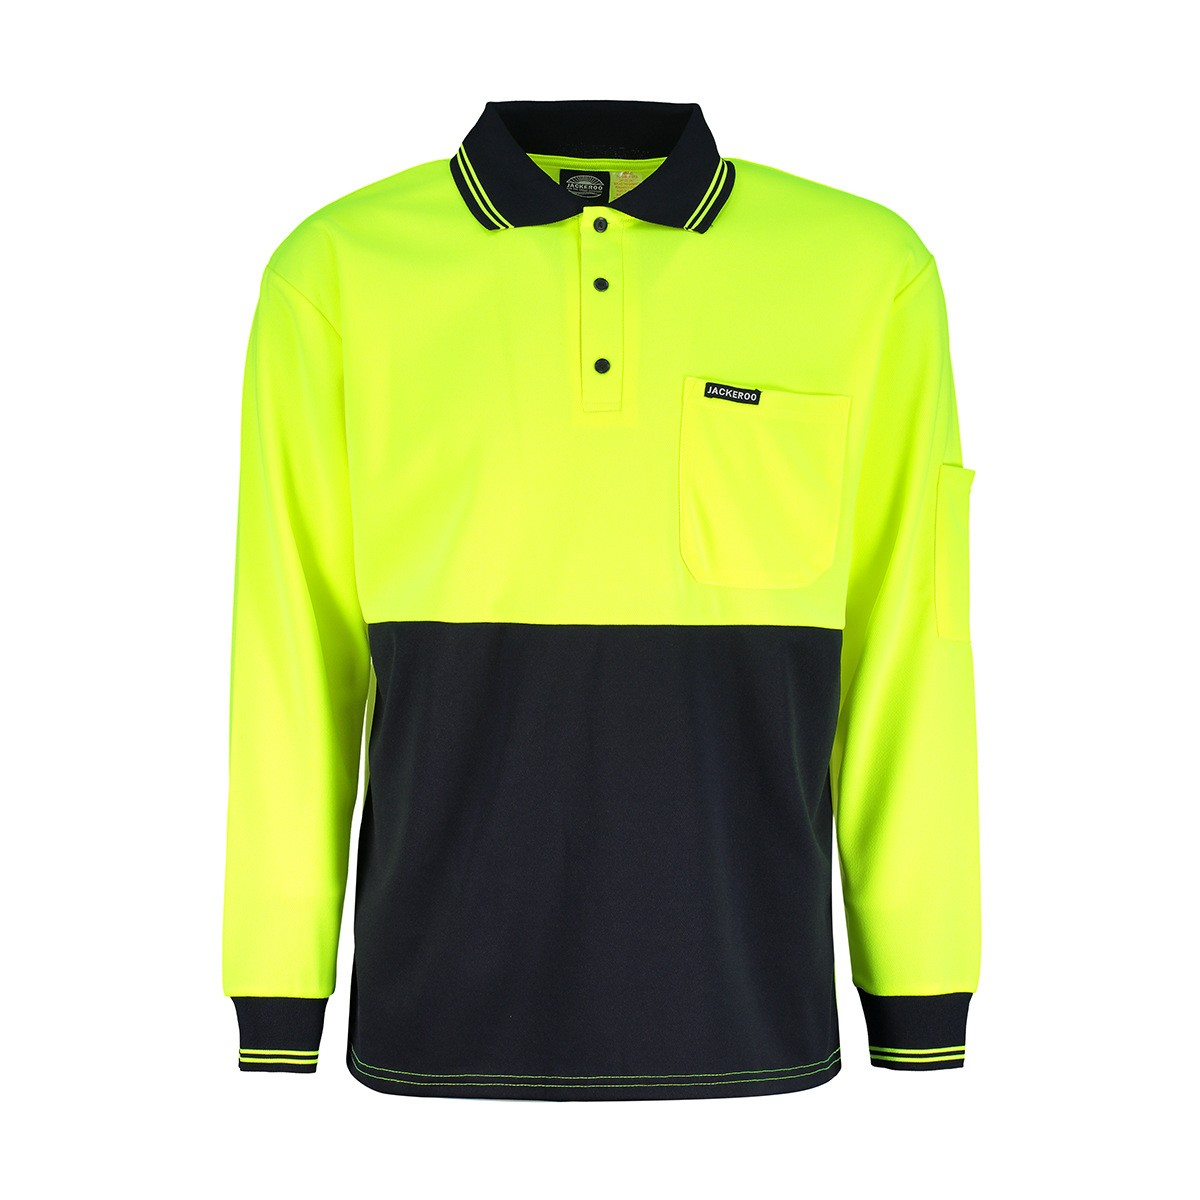 custom workwear fluro